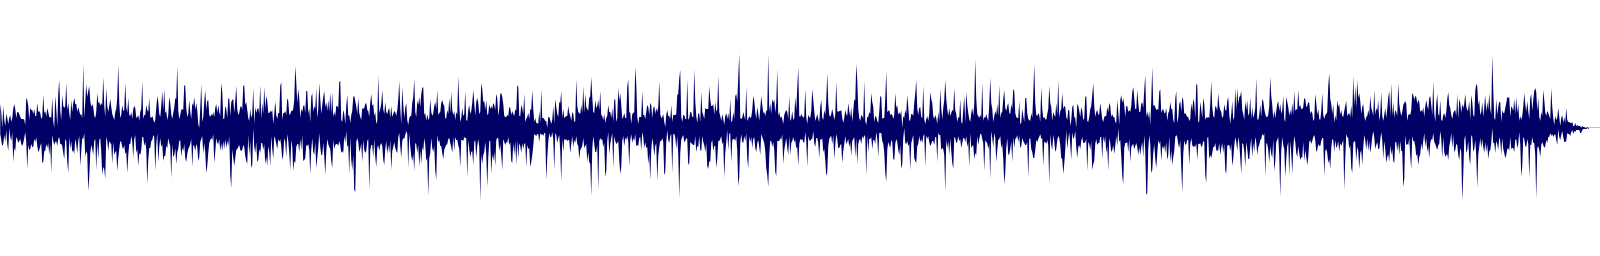 waveform of track #91188